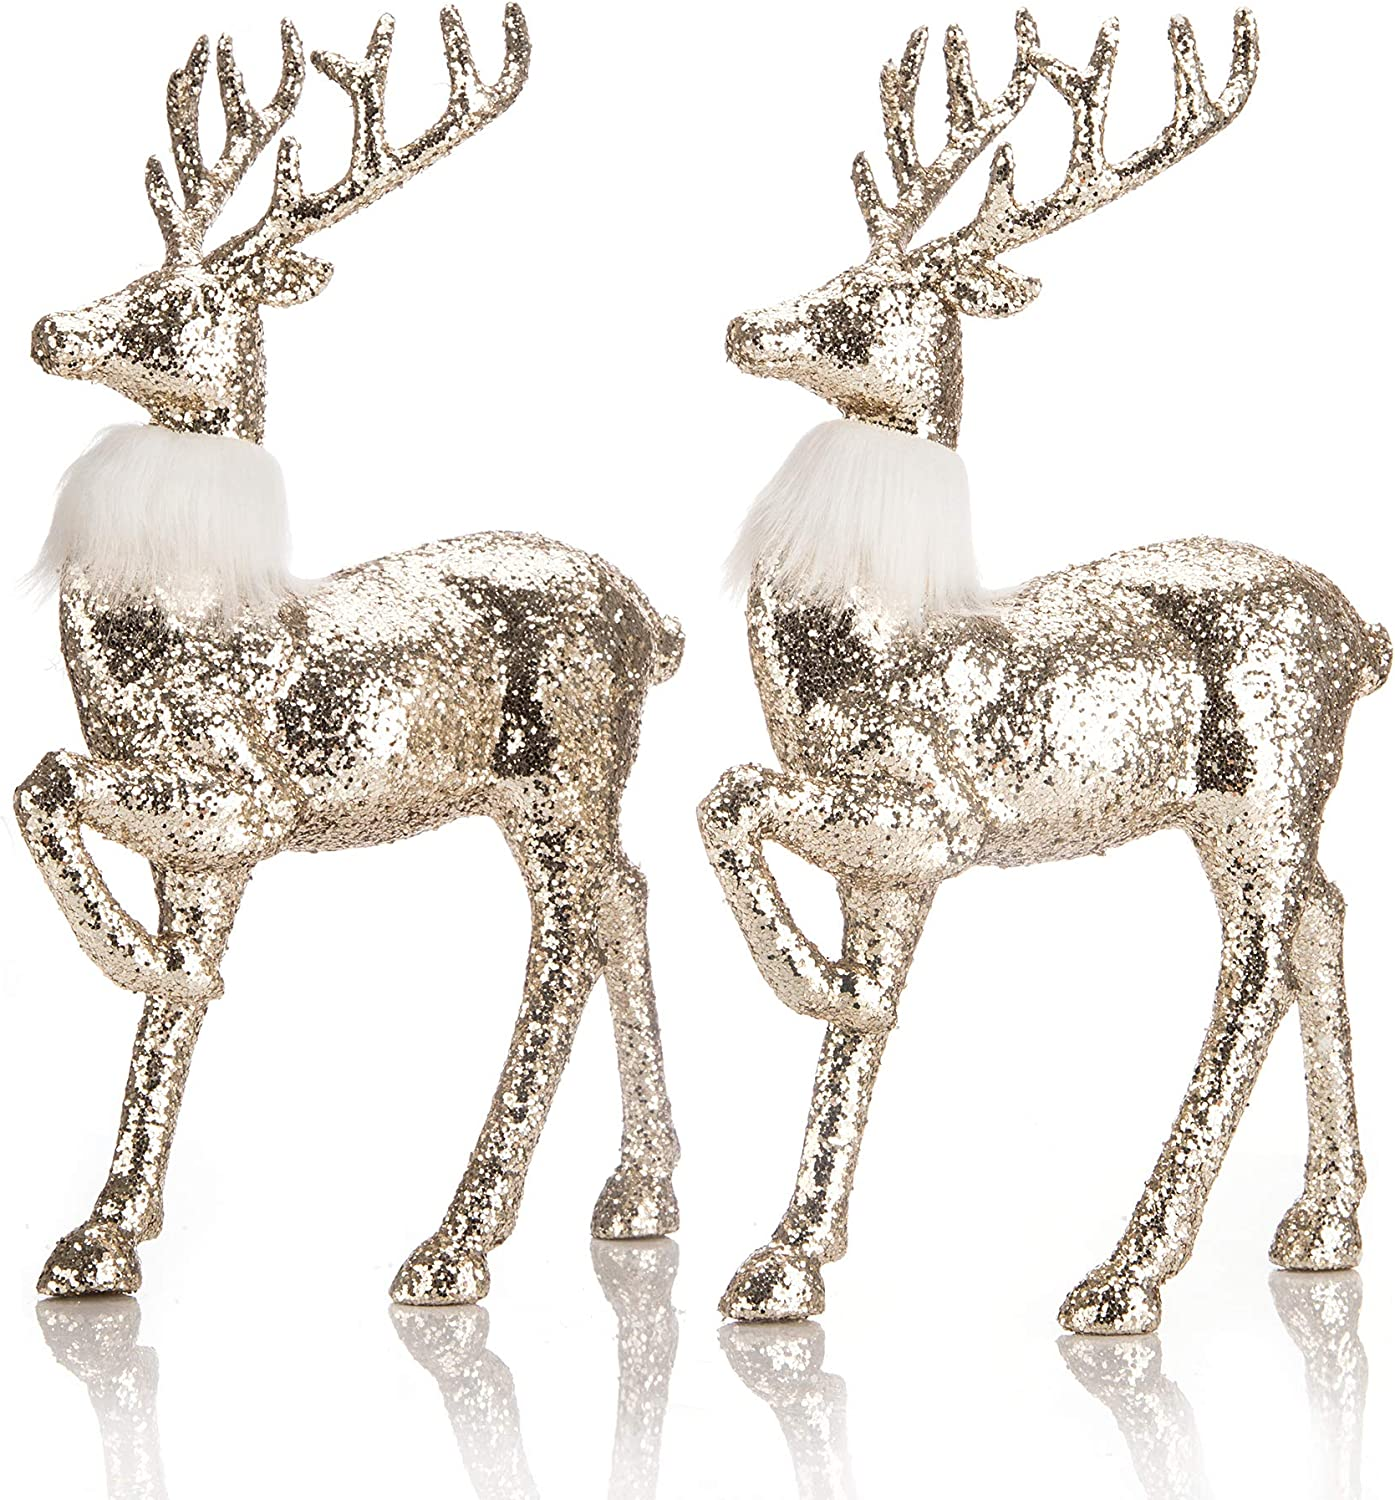 blitzlabs Green Sequined Glitter Christmas Reindeer Indoor Homely Creative Furnishing Articles Display Freestanding for Living Room, Tabletop, Kitchen ,Mantle, Shelf ,Desk Winter Decor,Set of 2